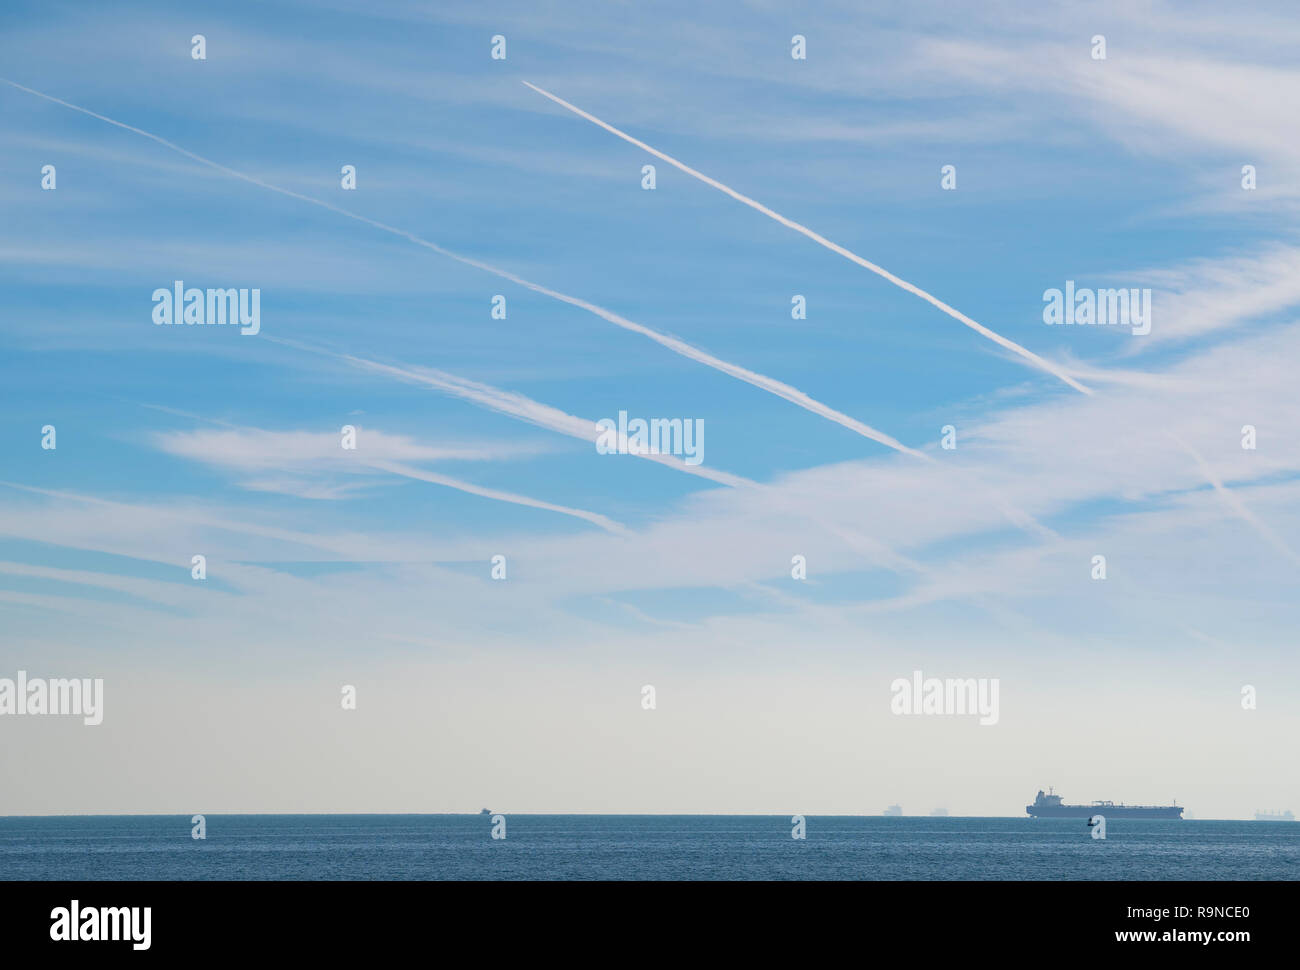 Many contrails from passenger aircraft from emirates airline A380s flying north past Kuwait from Dubai en route to Europe. - Stock Image